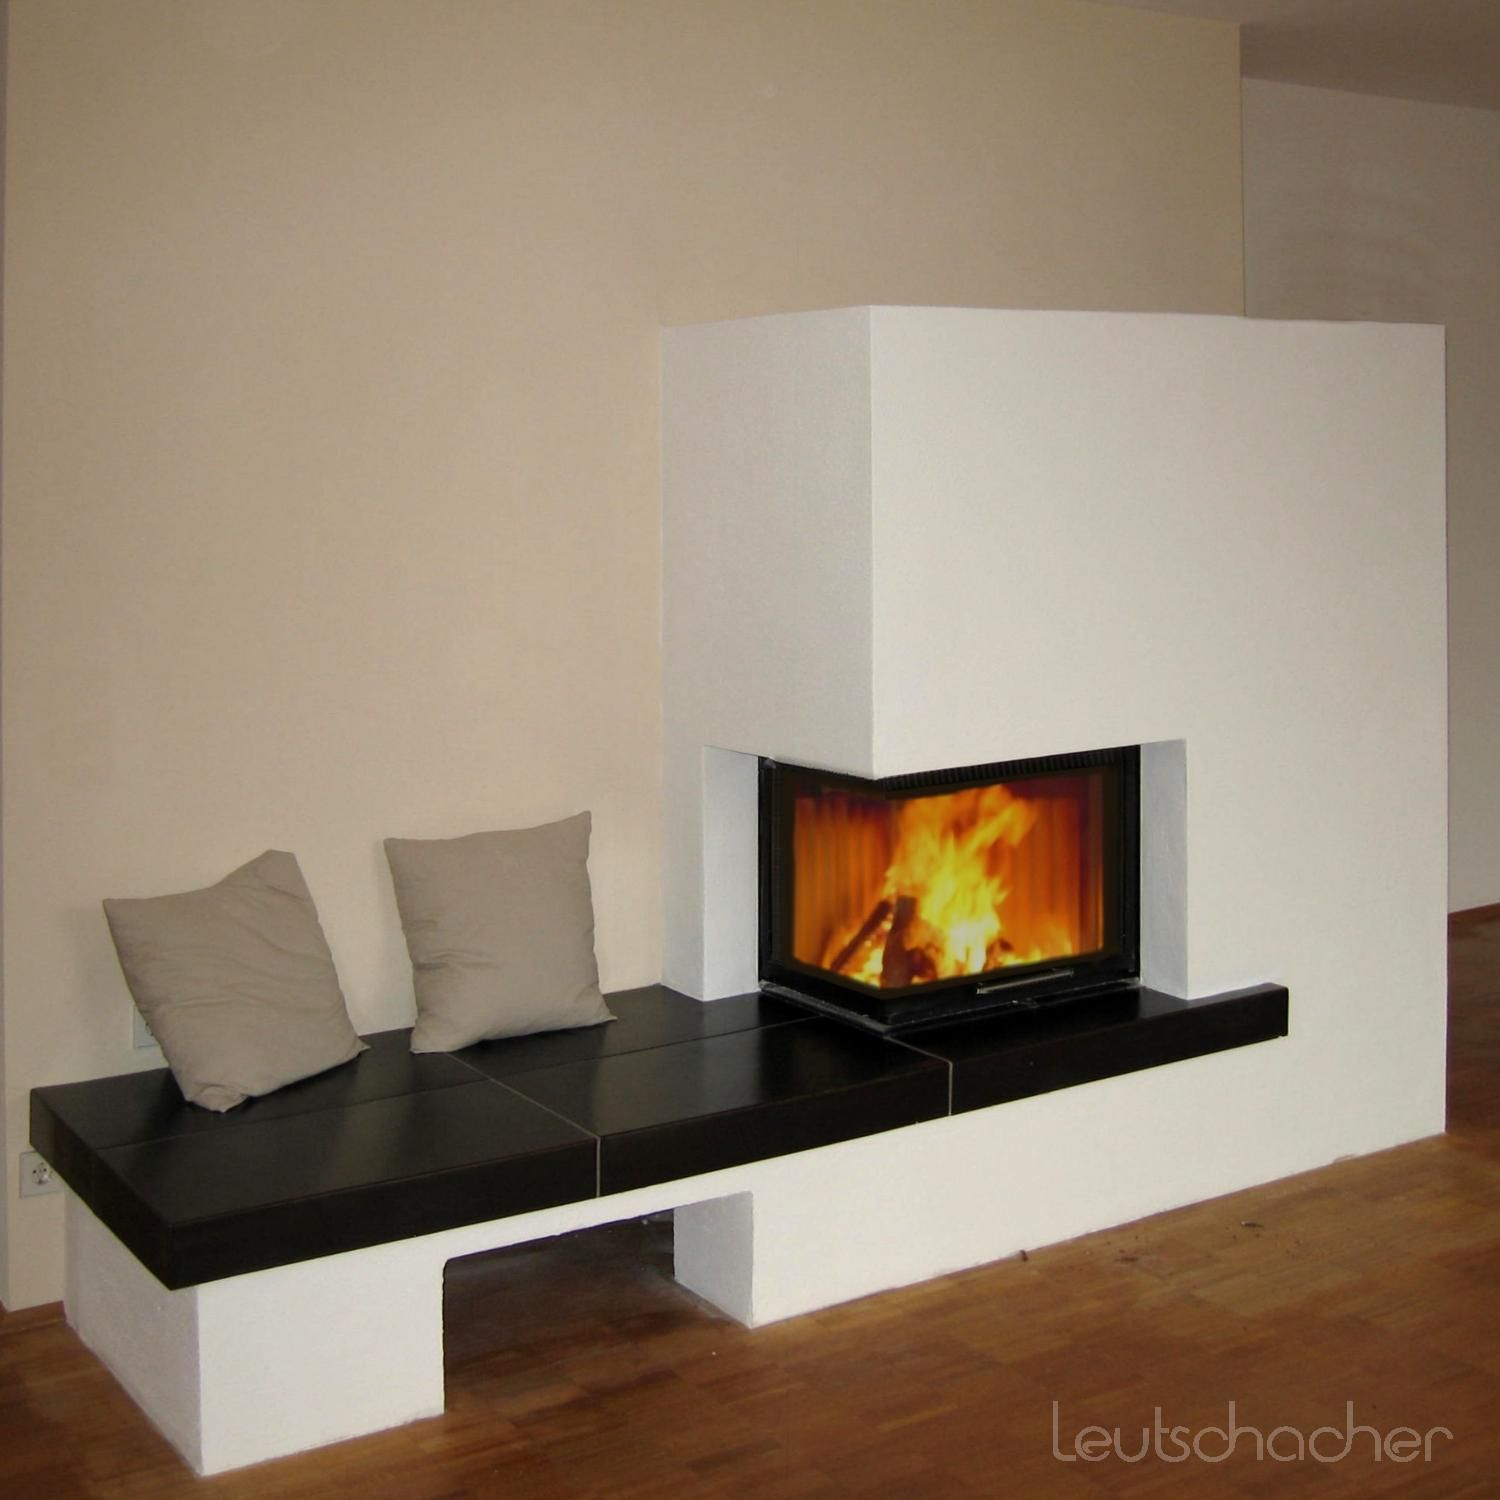 leutschacher kamin heizkamin warmluftkamin kamineinsatz project reethaus. Black Bedroom Furniture Sets. Home Design Ideas